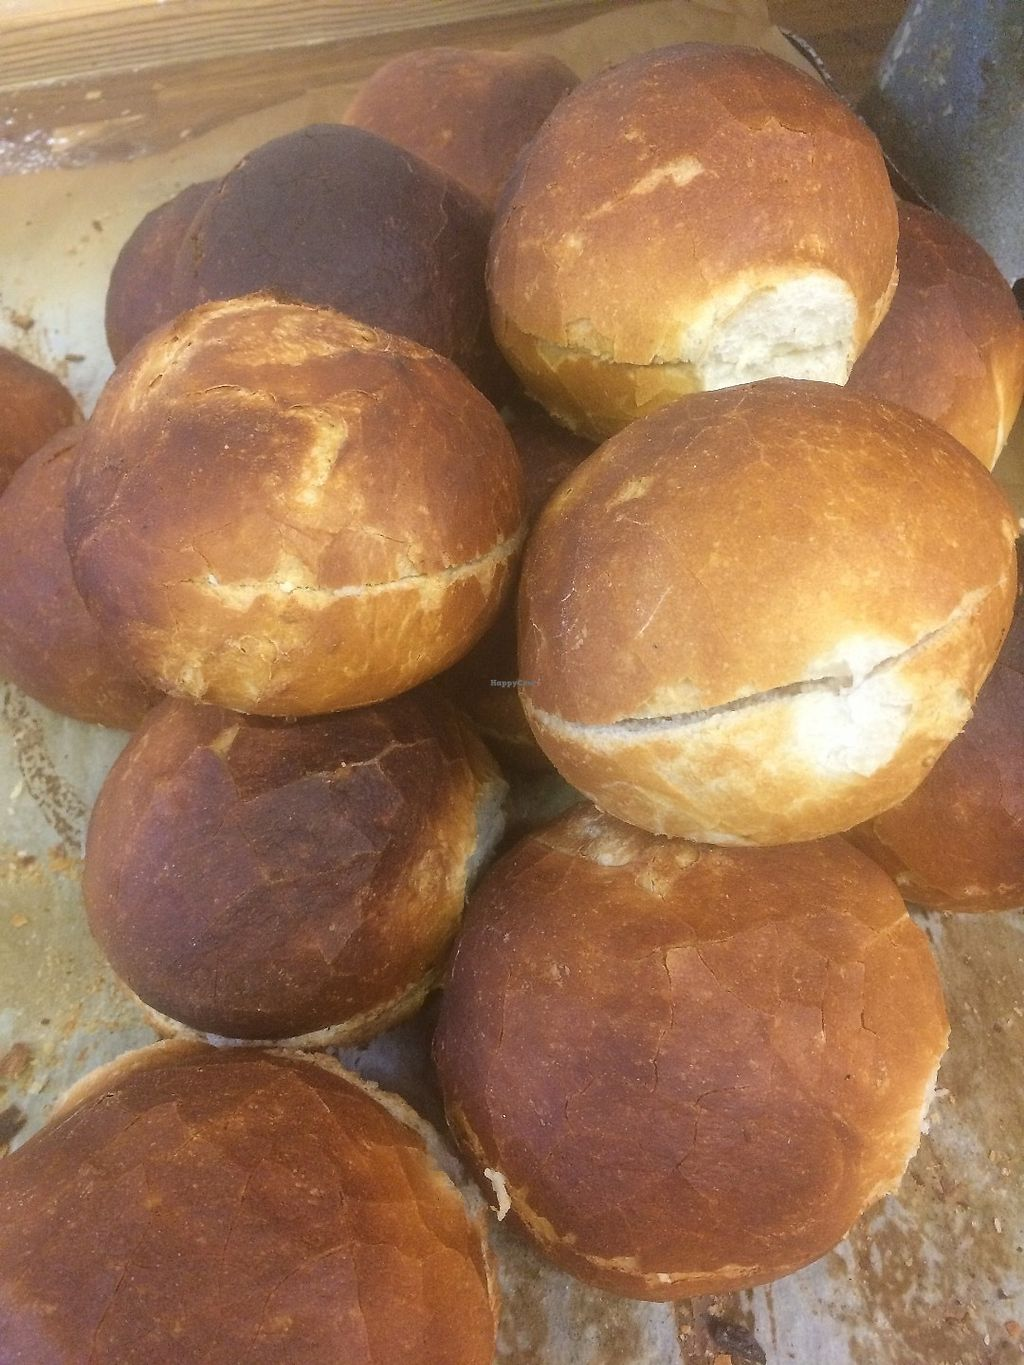 """Photo of Hot Pantry Bakery  by <a href=""""/members/profile/PaulStevenEvans"""">PaulStevenEvans</a> <br/>Vegan crusty cobs <br/> June 18, 2017  - <a href='/contact/abuse/image/93914/270468'>Report</a>"""